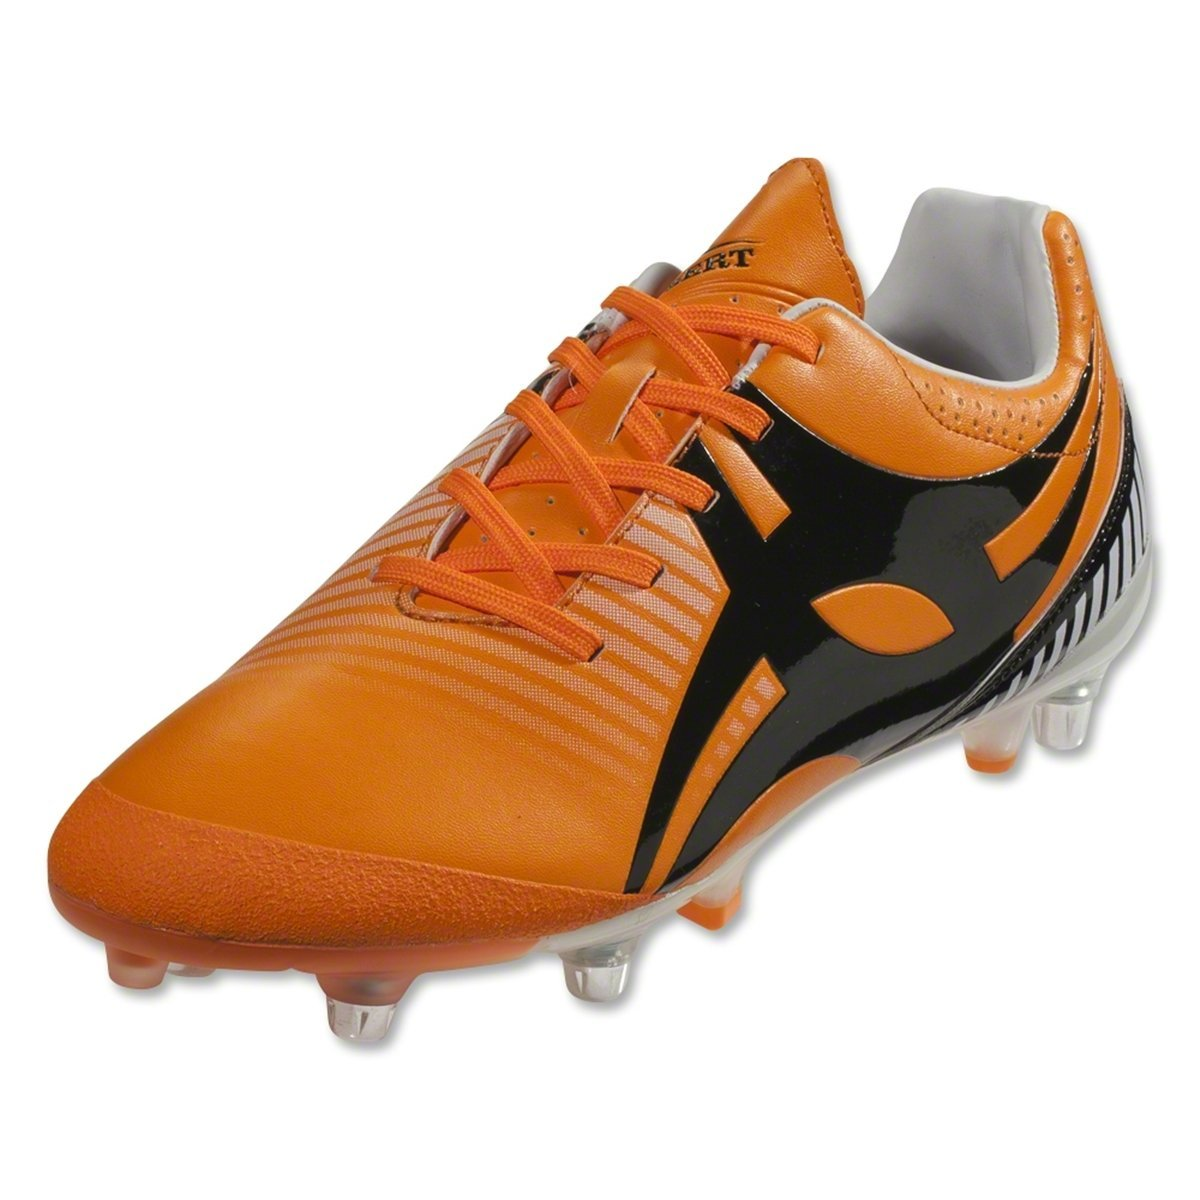 Gilbert Ignite Fly 6 Stud Rugby Boot (13 US Men's) by Gilbert